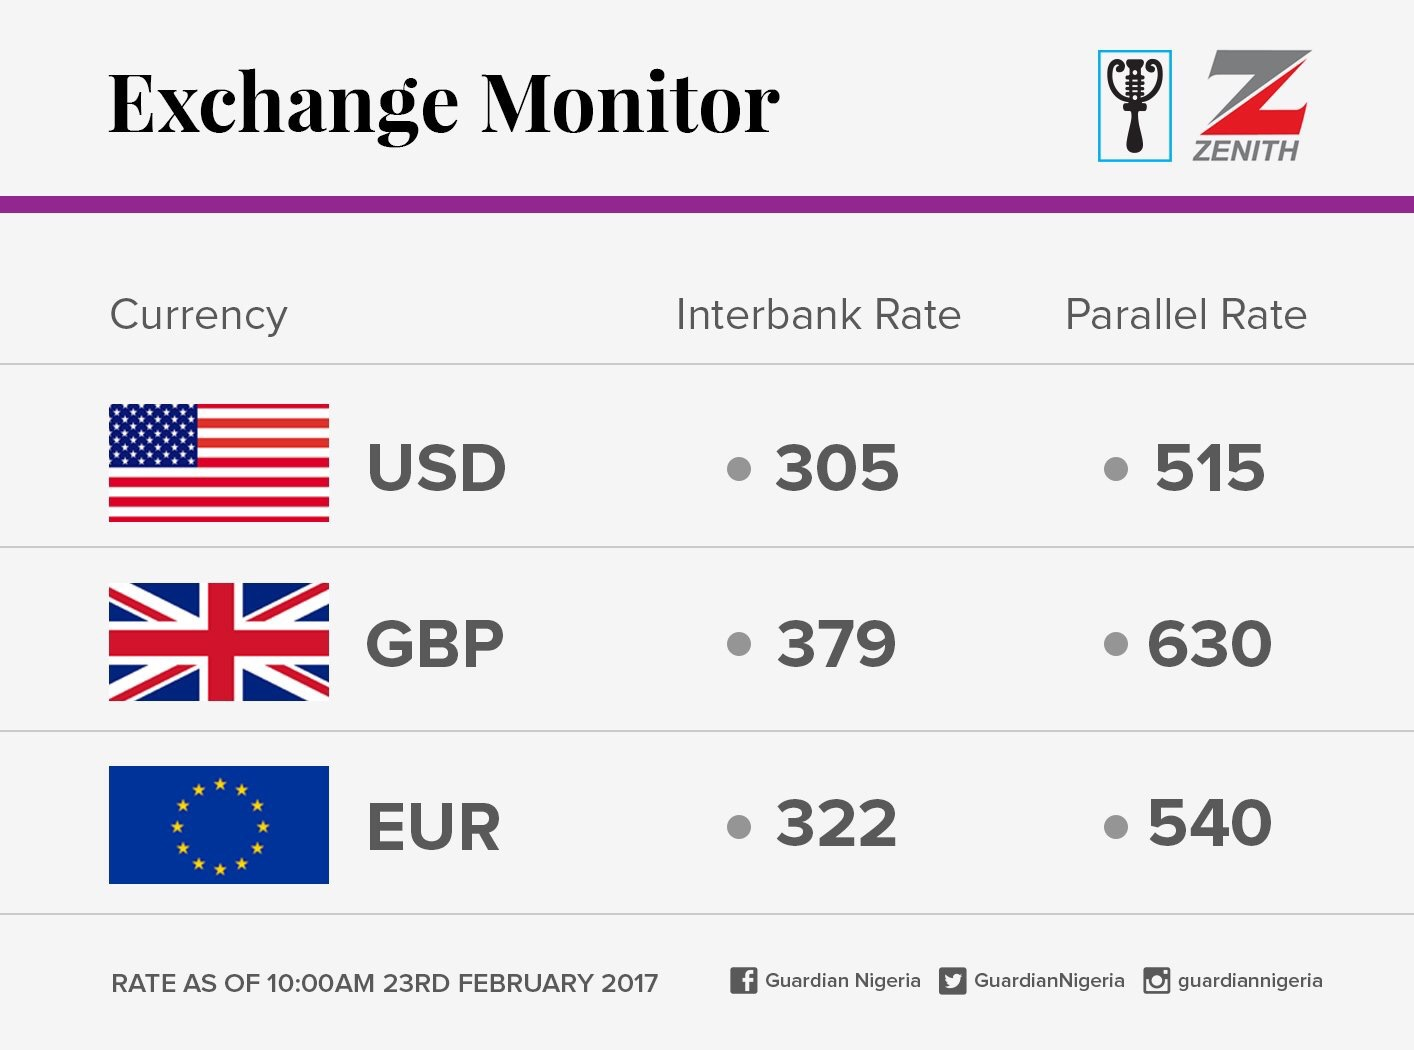 Exchange Rate For 23rd February 2017